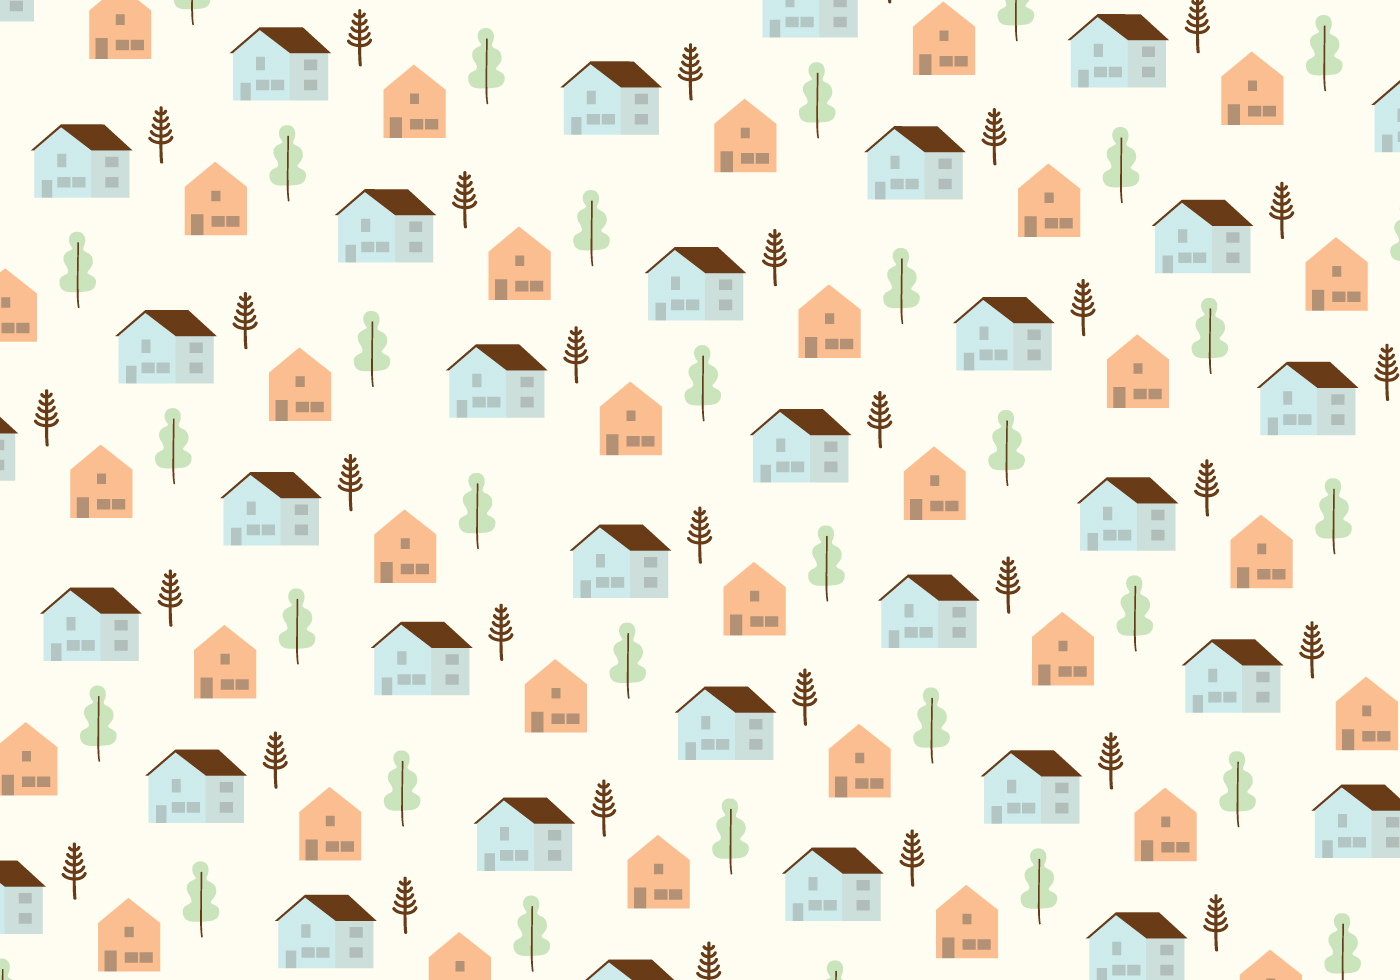 Houses and trees pattern background download free vector for House pattern